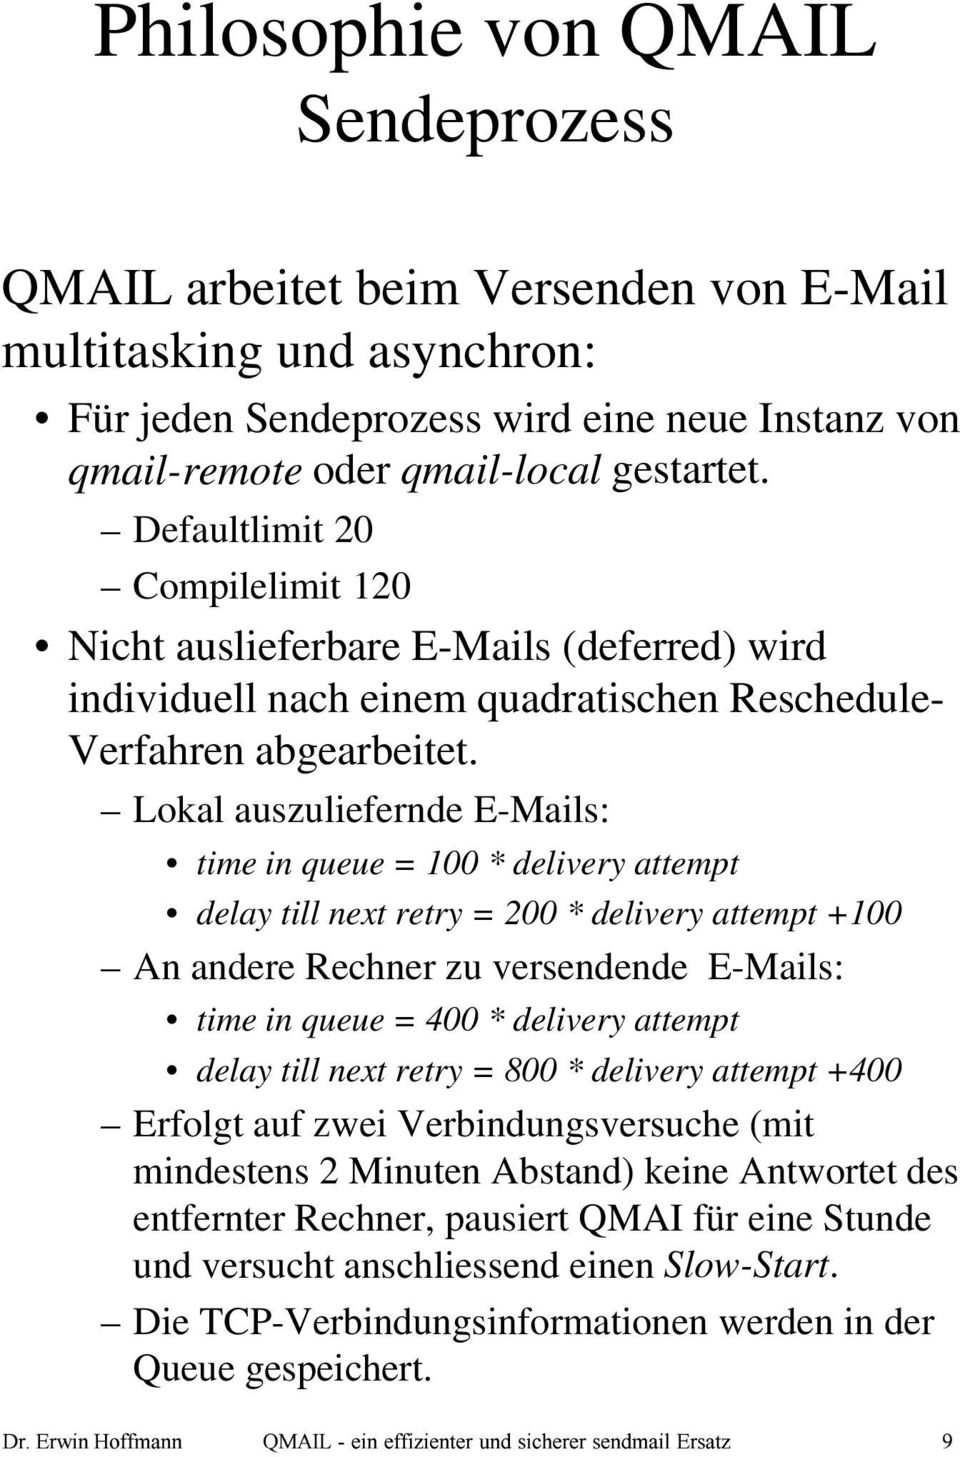 Lokal auszuliefernde E-Mails: time in queue = 100 * delivery attempt delay till next retry = 200 * delivery attempt +100 An andere Rechner zu versendende E-Mails: time in queue = 400 * delivery